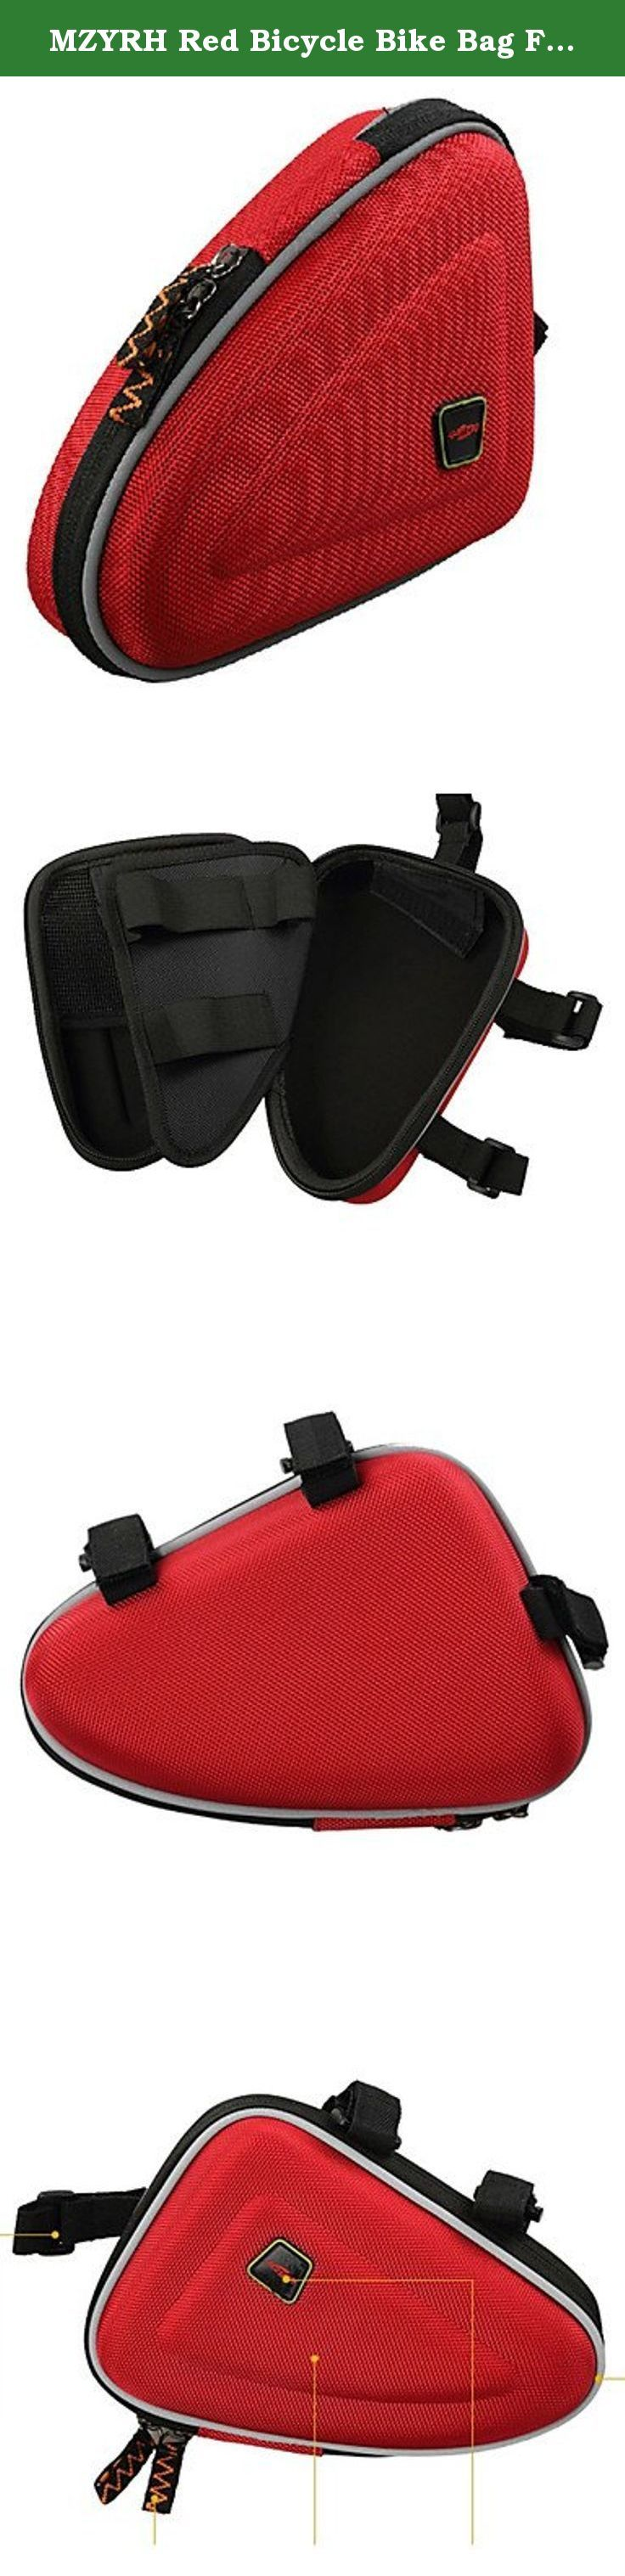 MZYRH Red Bicycle Bike Bag Front Tube Triangle Frame Bag. Activity:Cycling, Occasion:Outdoor, Material:EVA, Color:Red, Function:Water Bottle Pocket, Dimension (L¡ÁW¡ÁH) (cm):22.0 x 7.0 x 16.0, Net Weight (kg):0.198, Type:Bike Frame Bag, .